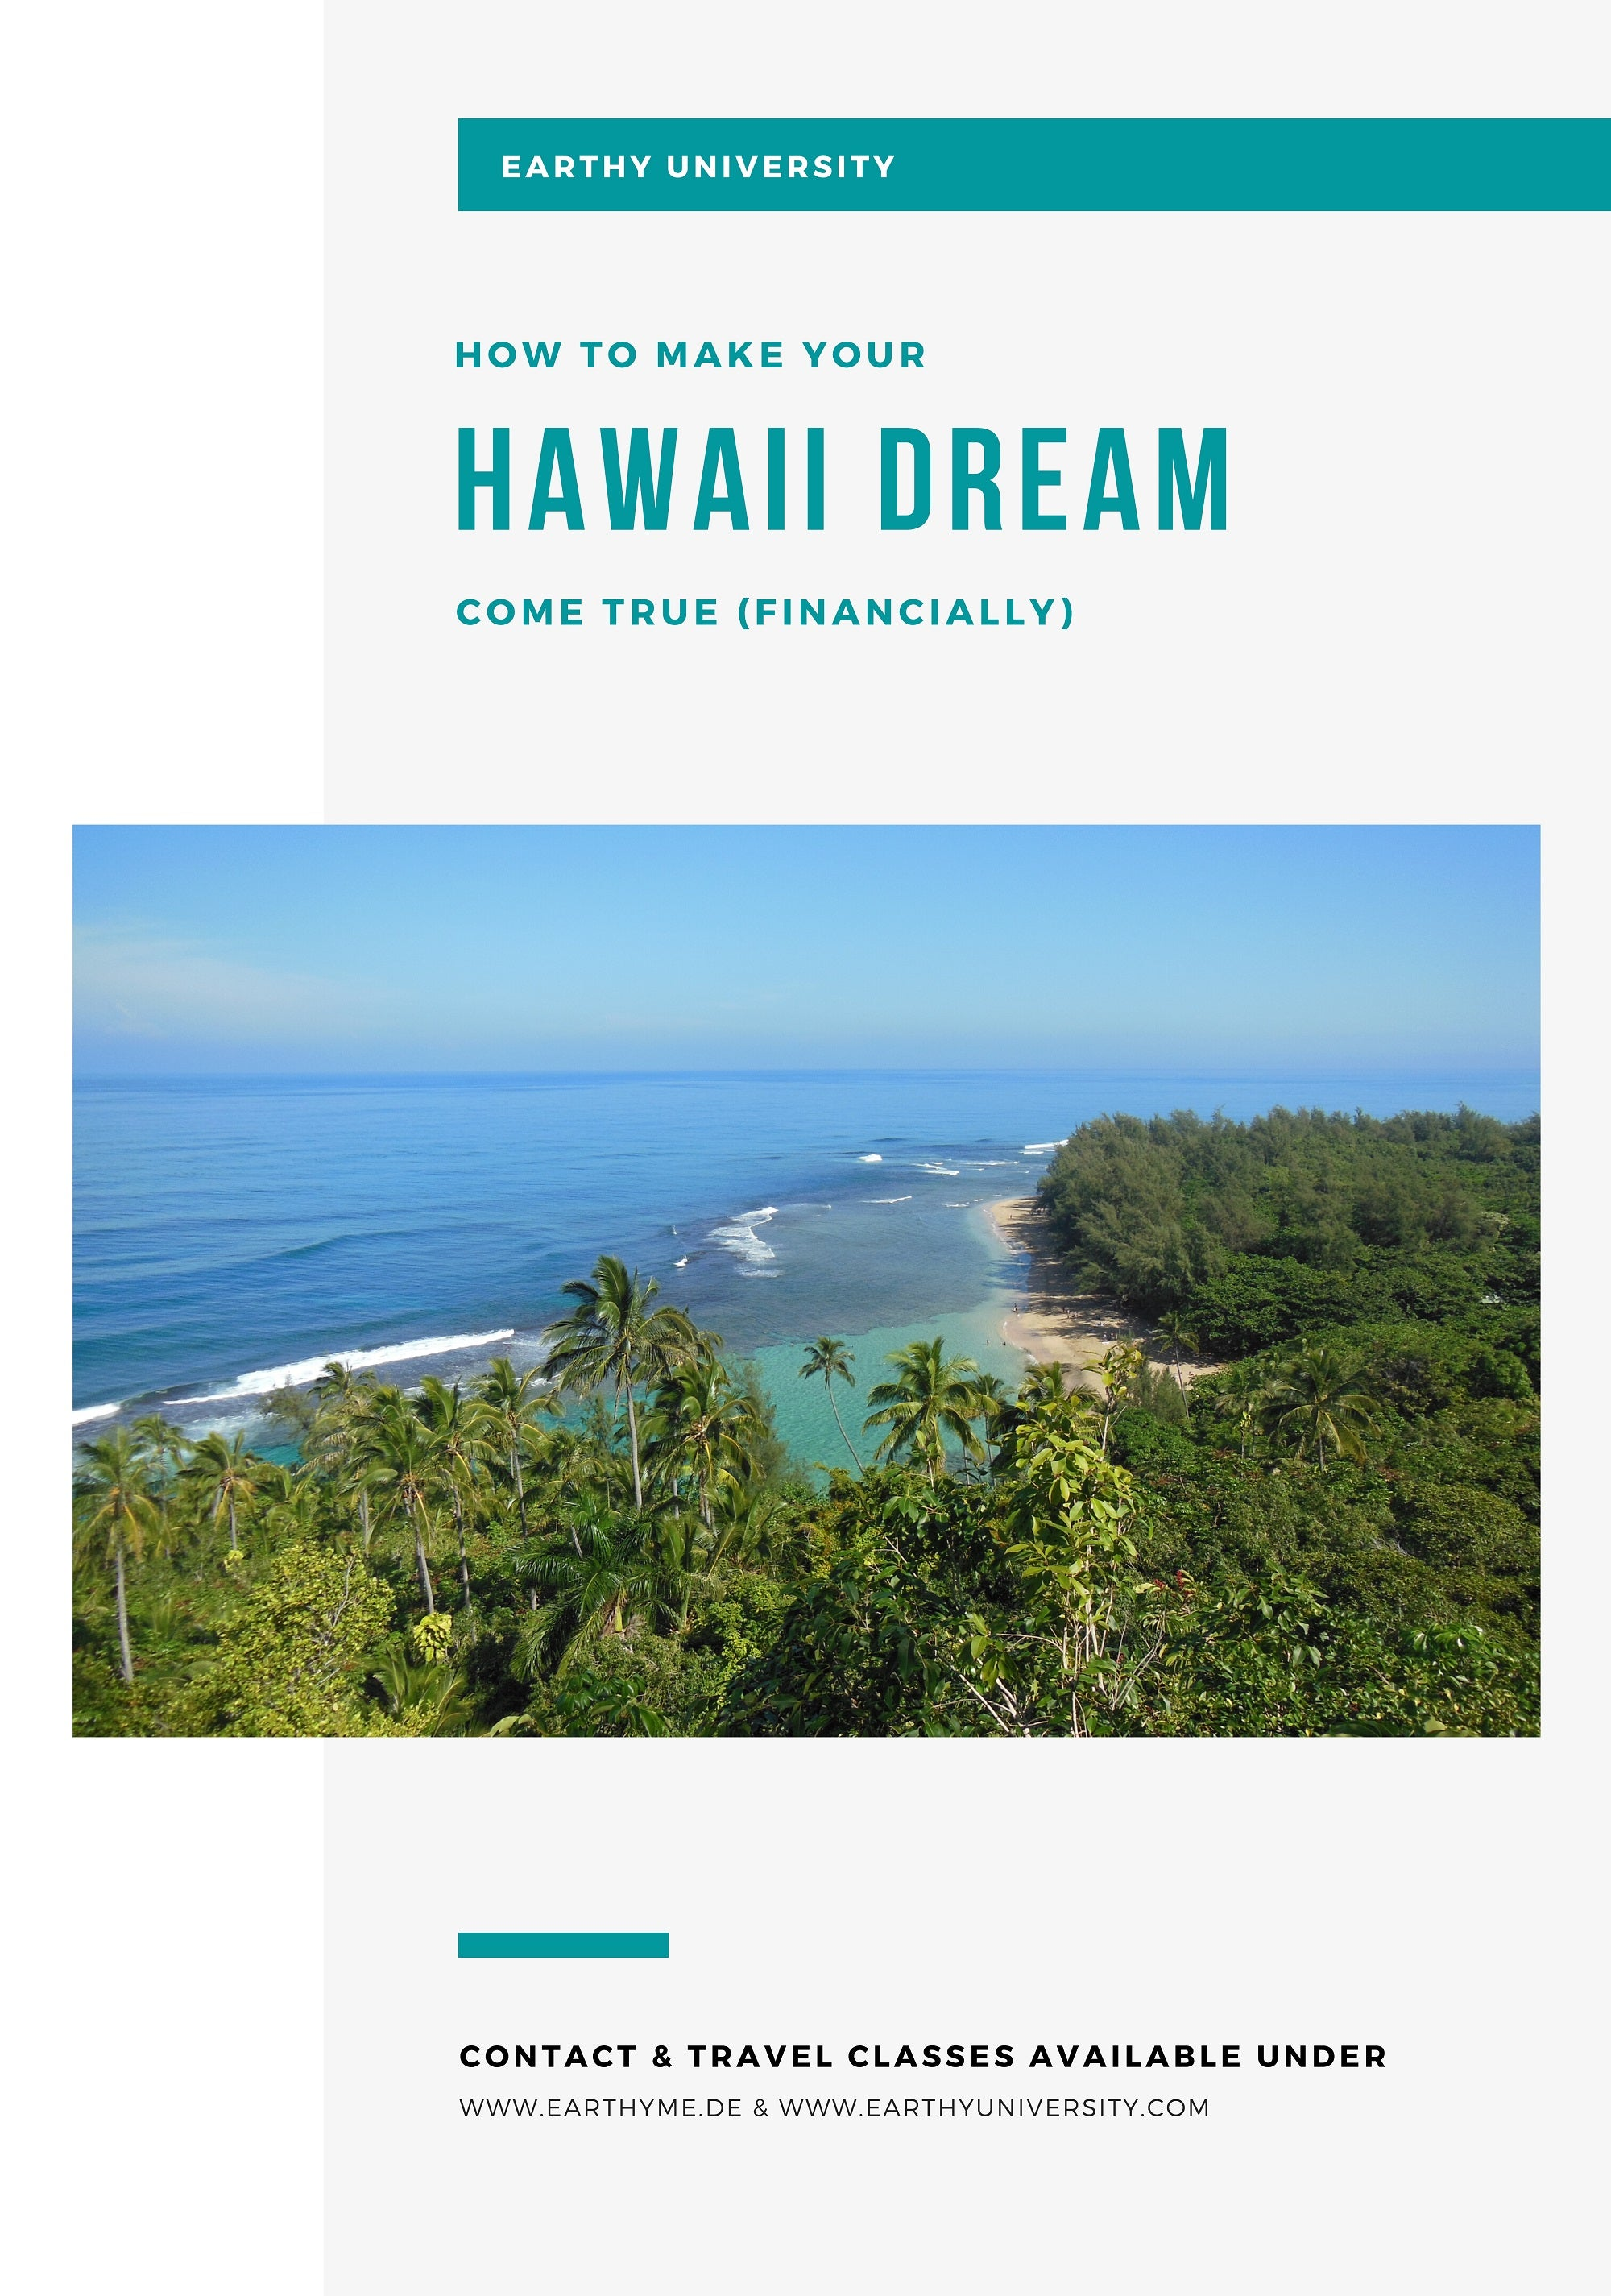 A simple guide on how to afford and plan the costs for a Hawaii vacation